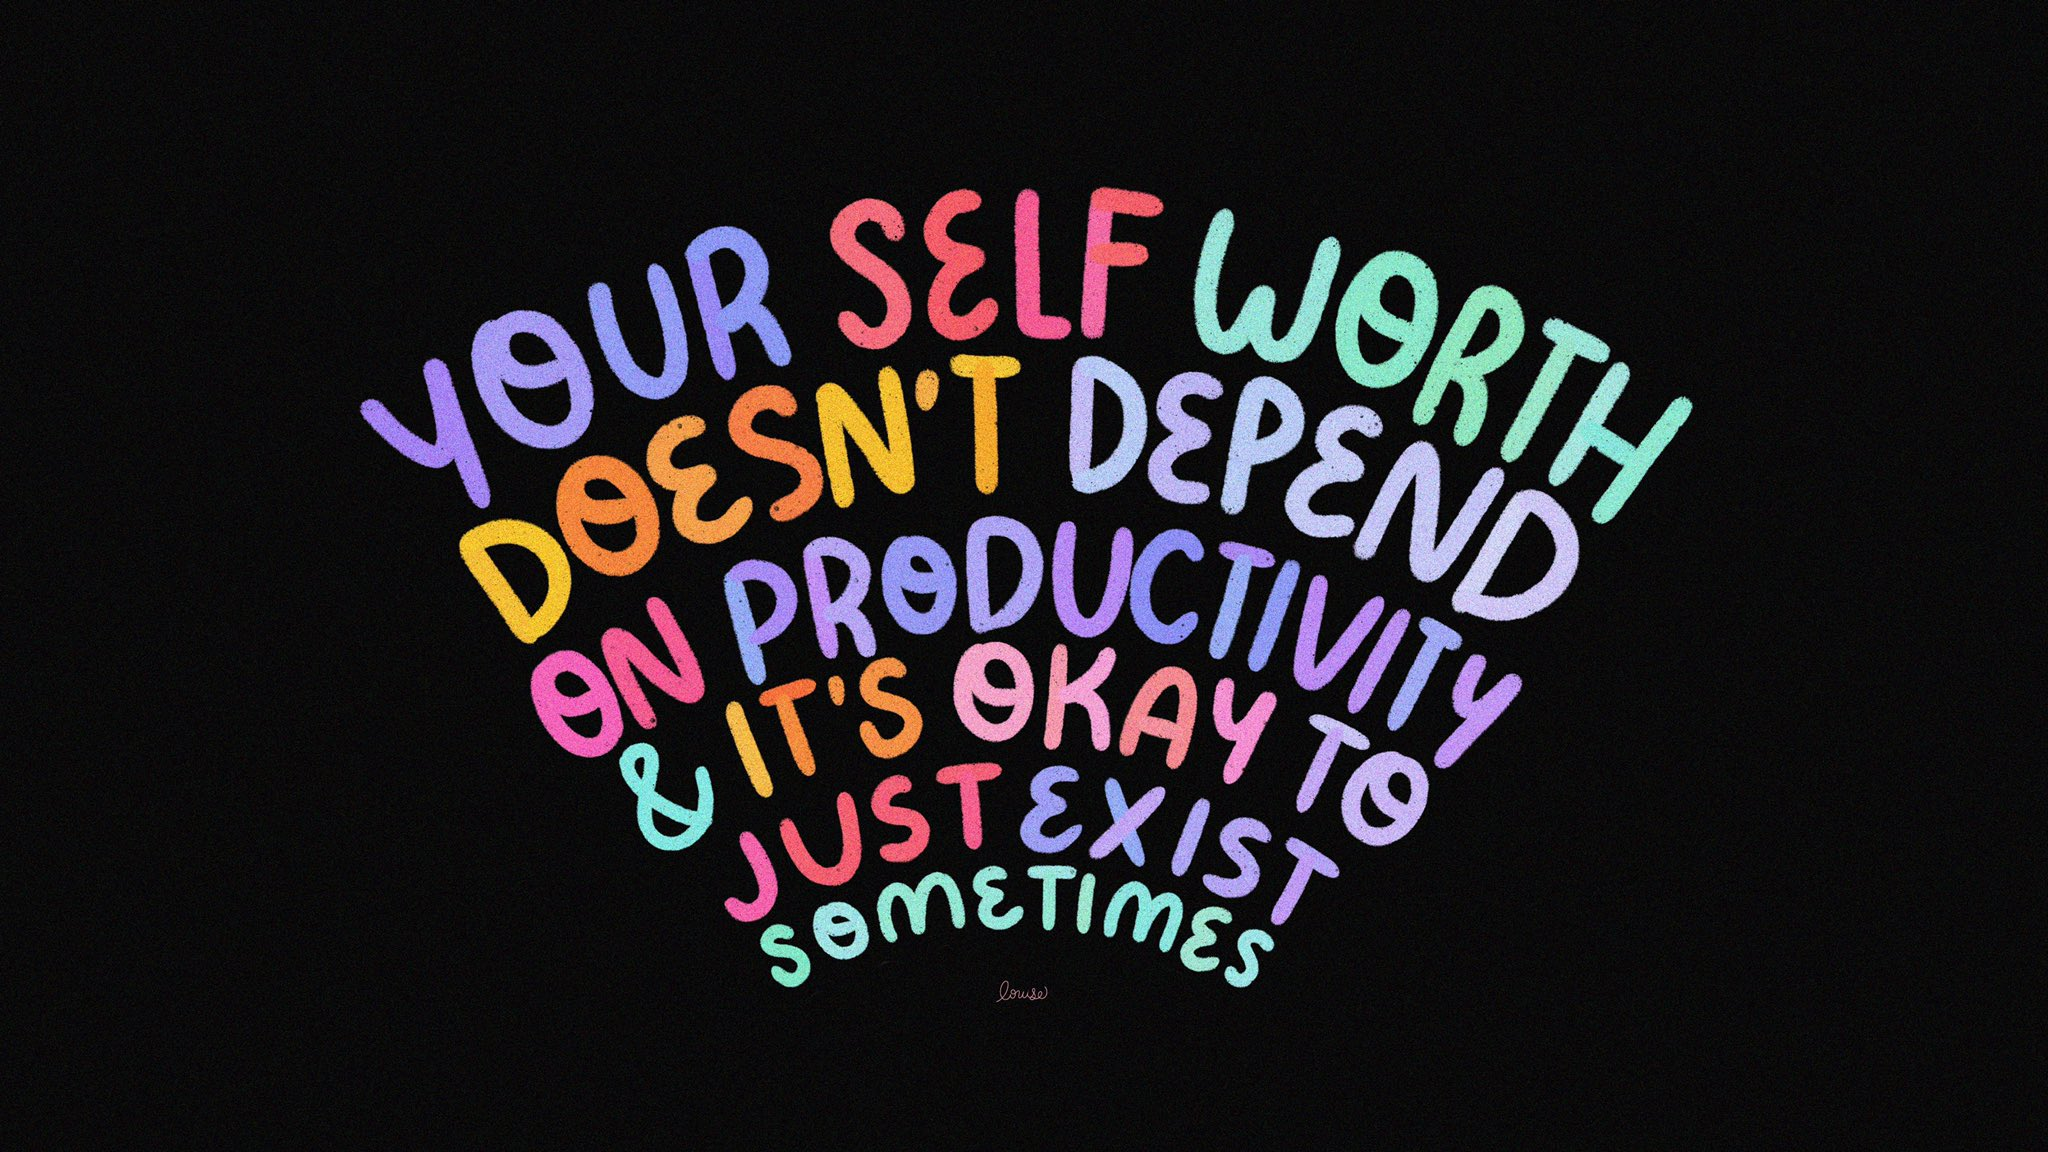 [Image] Your self-worth doesn't depend on productivity. It's okay to just exist sometimes!